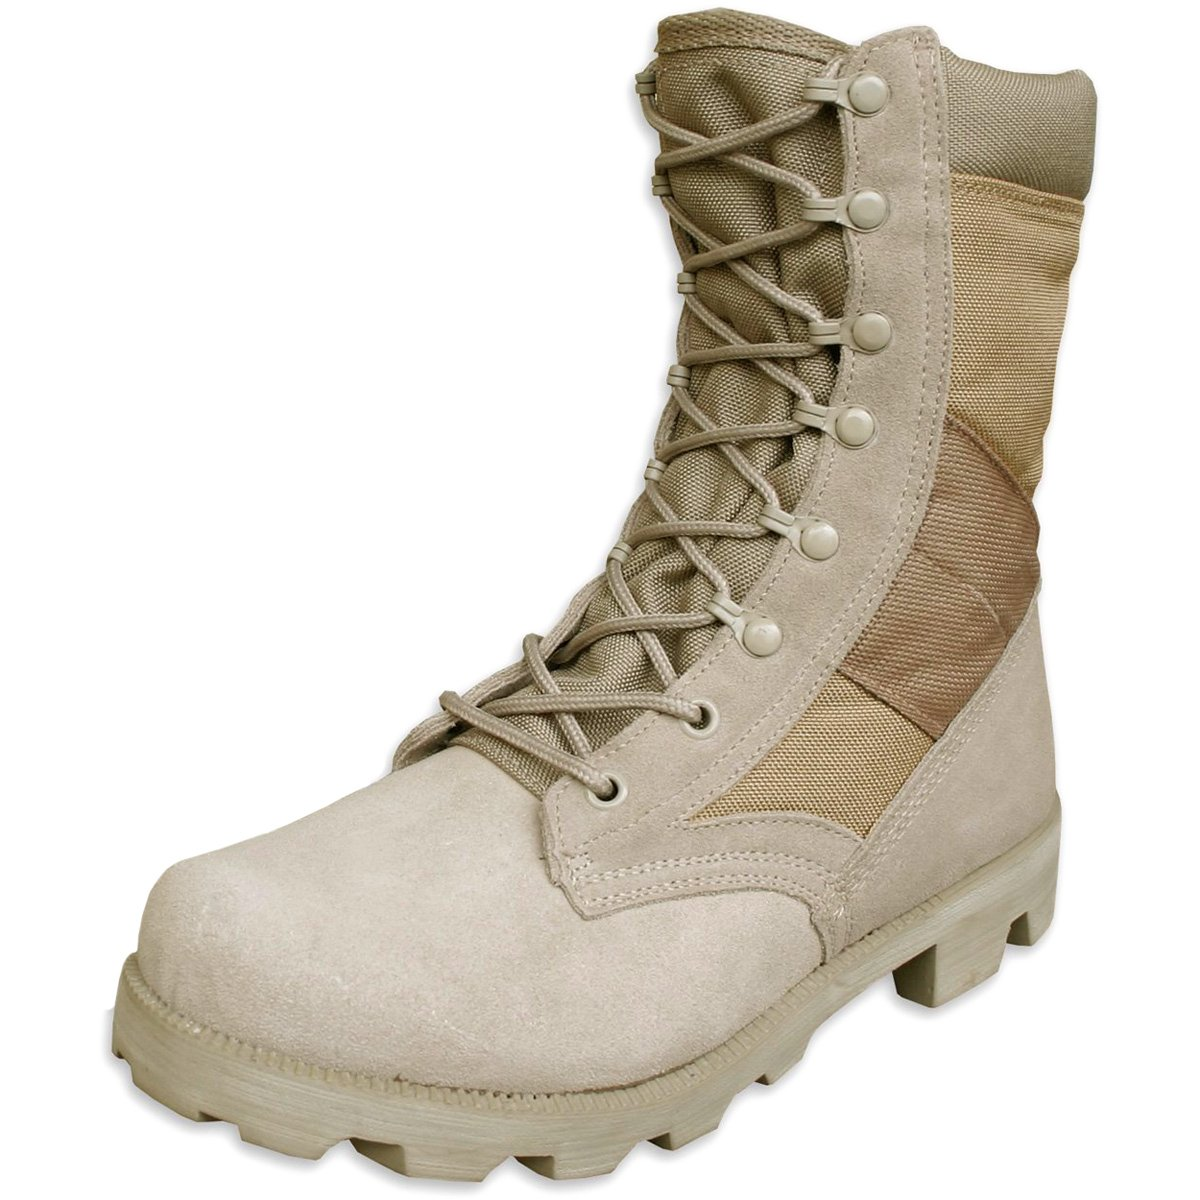 Mil-Tec US Speed Lace Combat Boots Desert size 10 US / 9 UK